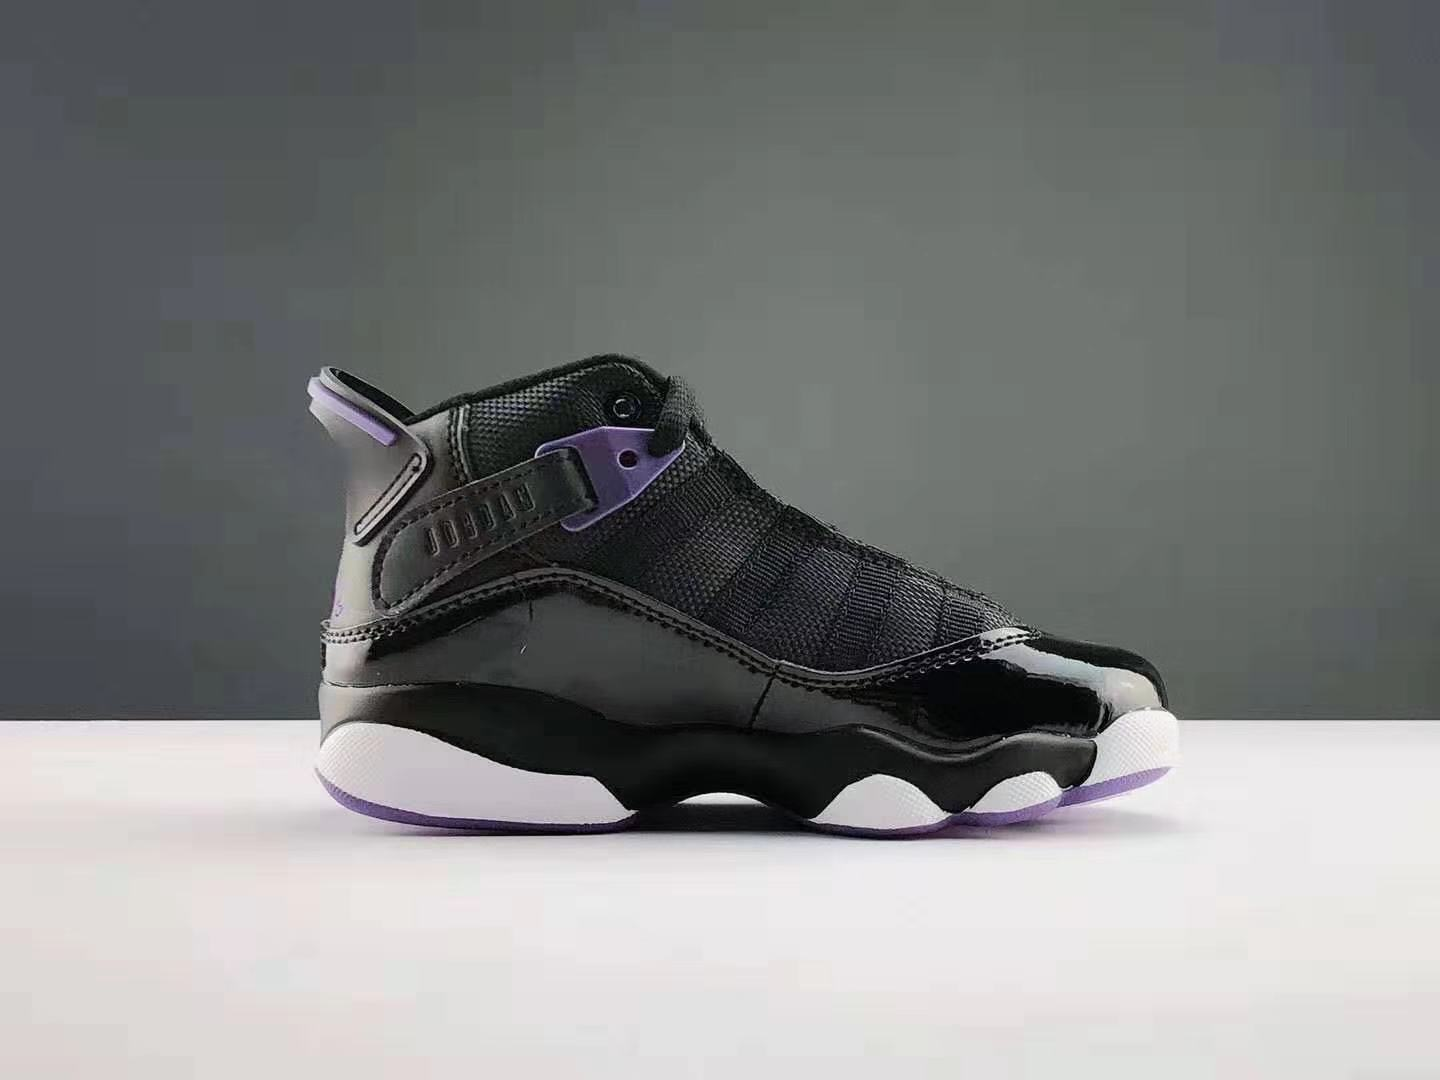 2019 Real Kids Jordan Six Rings Black Purple White